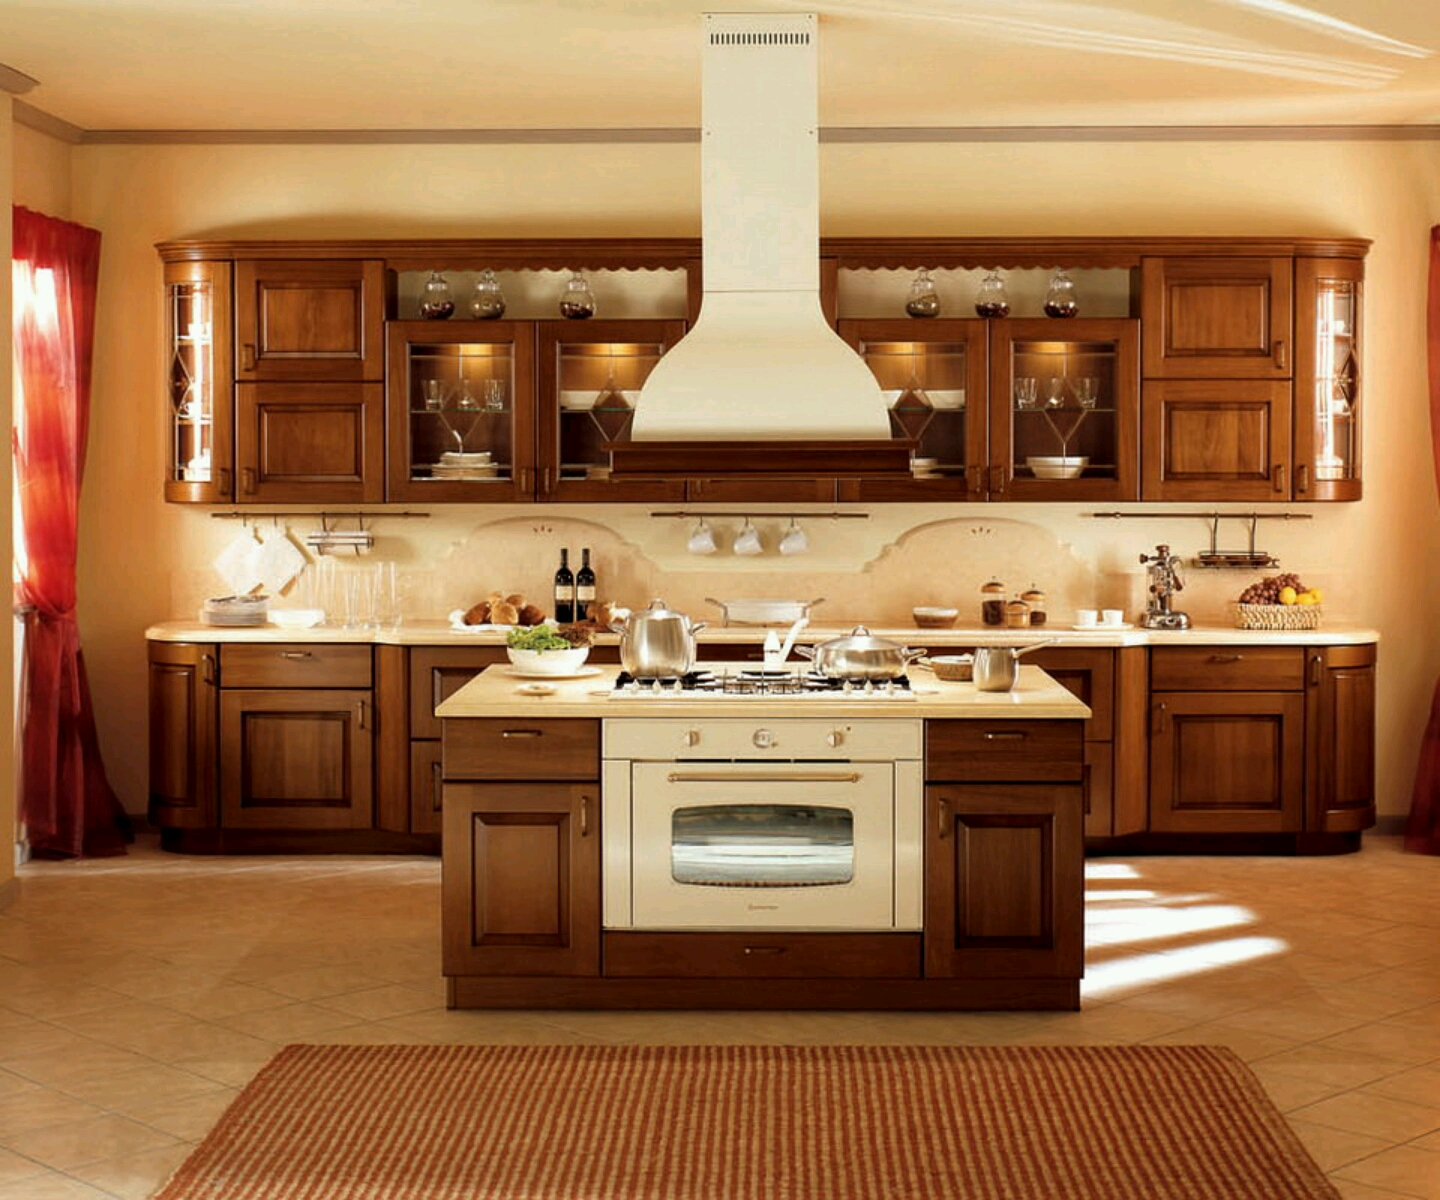 New home designs latest modern kitchen cabinets designs for New kitchen cabinets